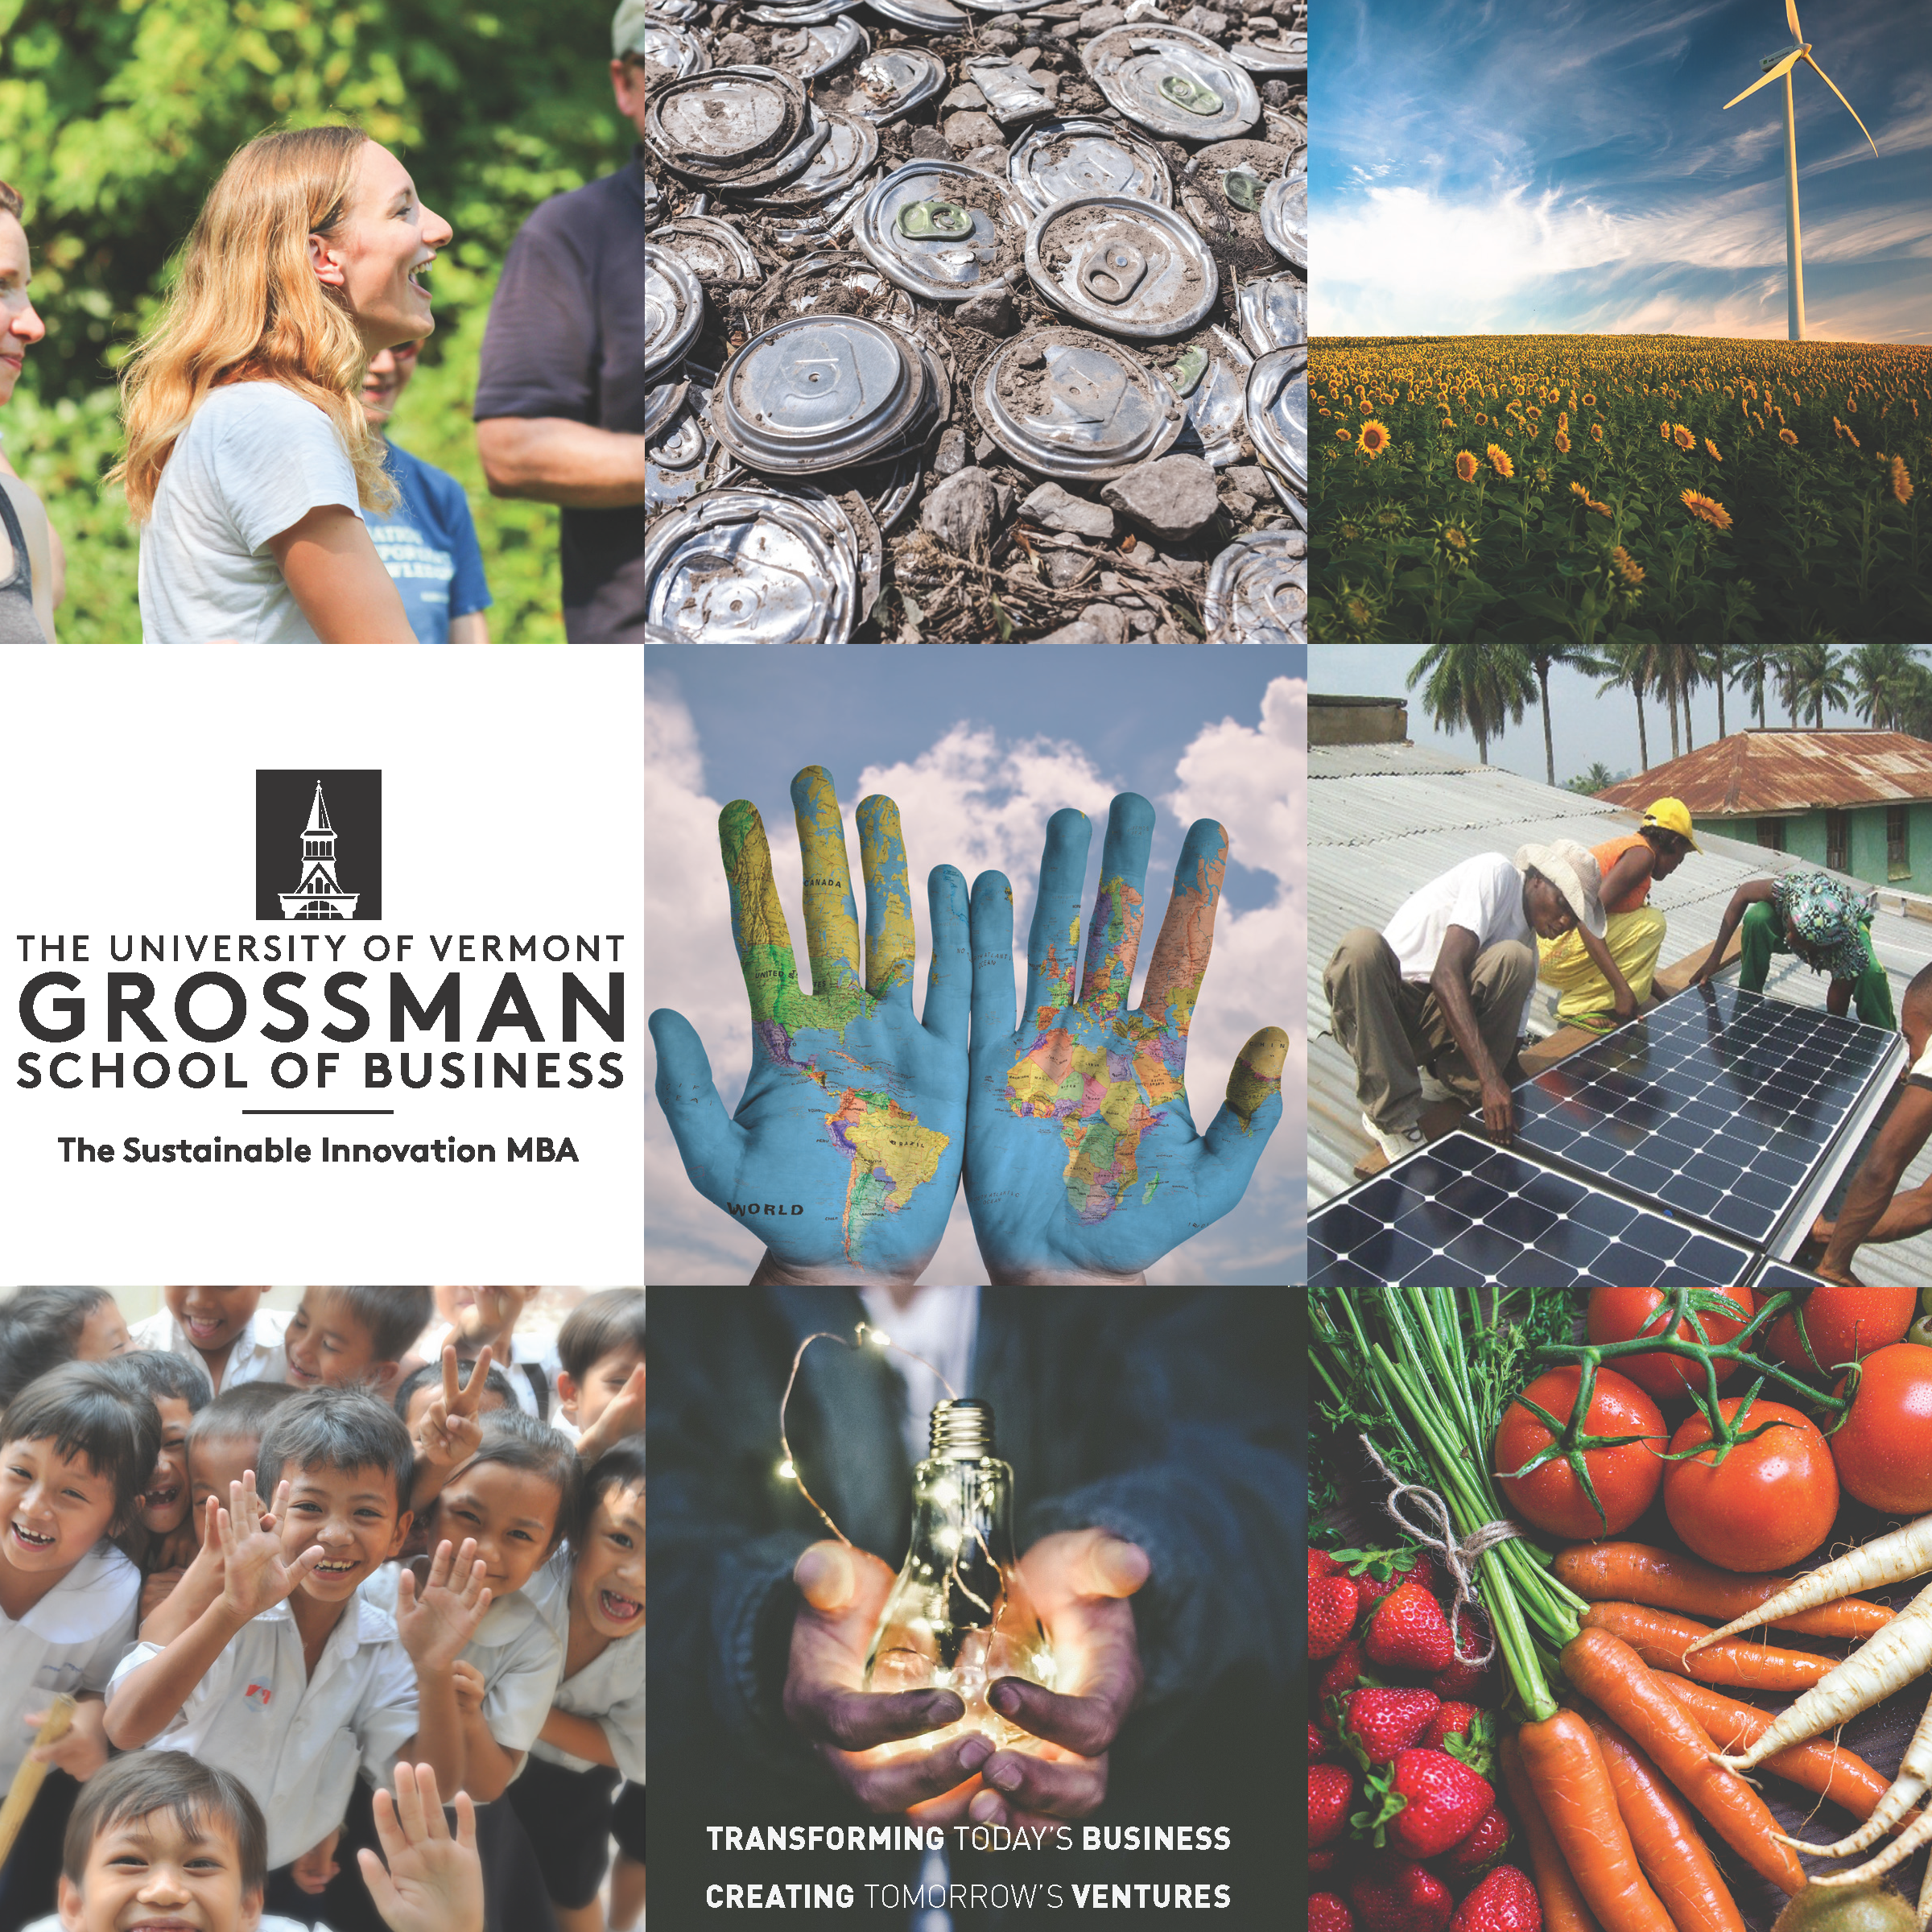 The Sustainable Innovation MBA | Grossman School of Business | The